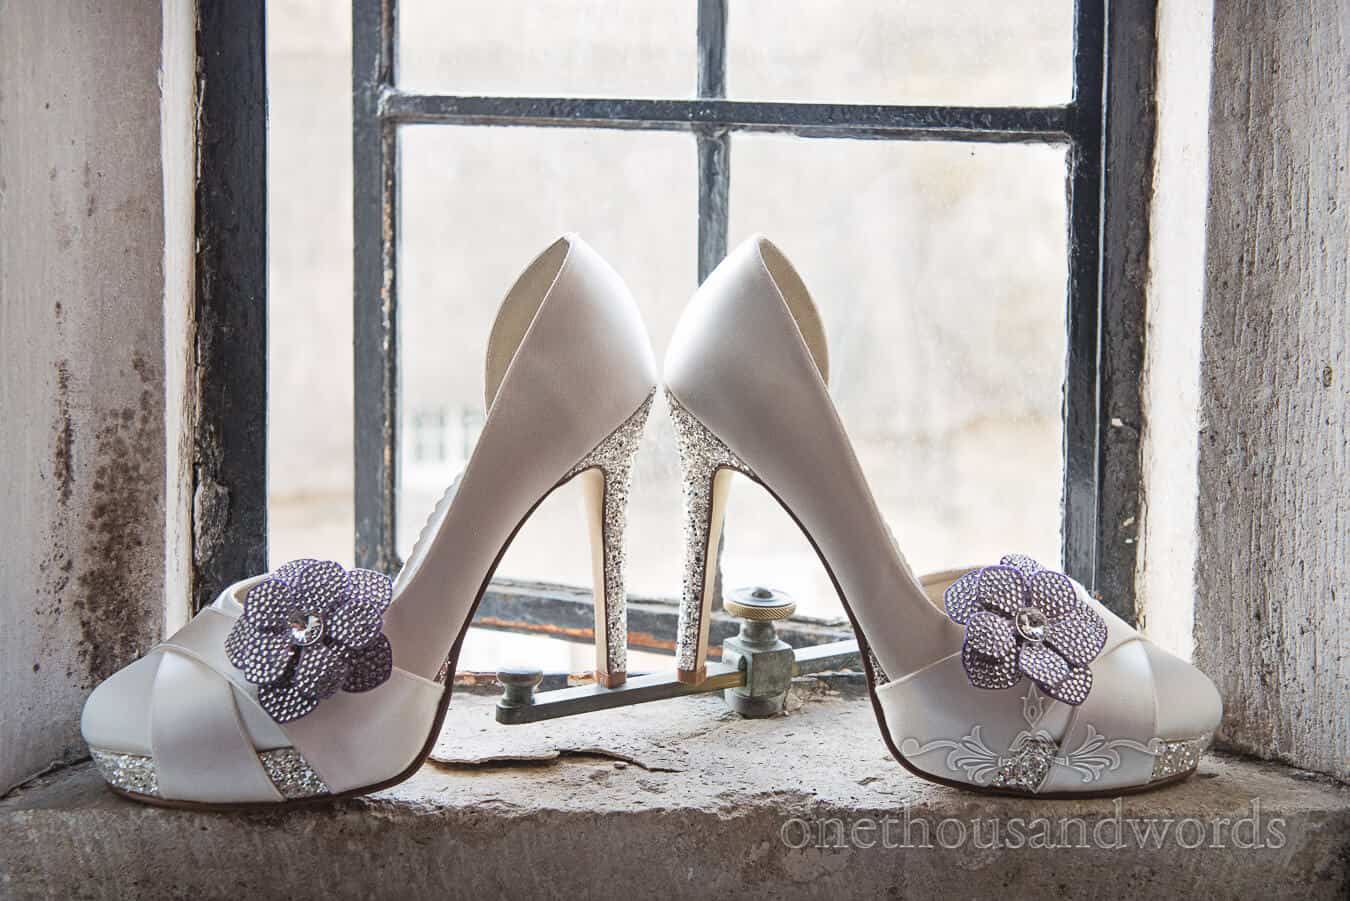 white and silver diamante wedding shoes with high heels and flowers